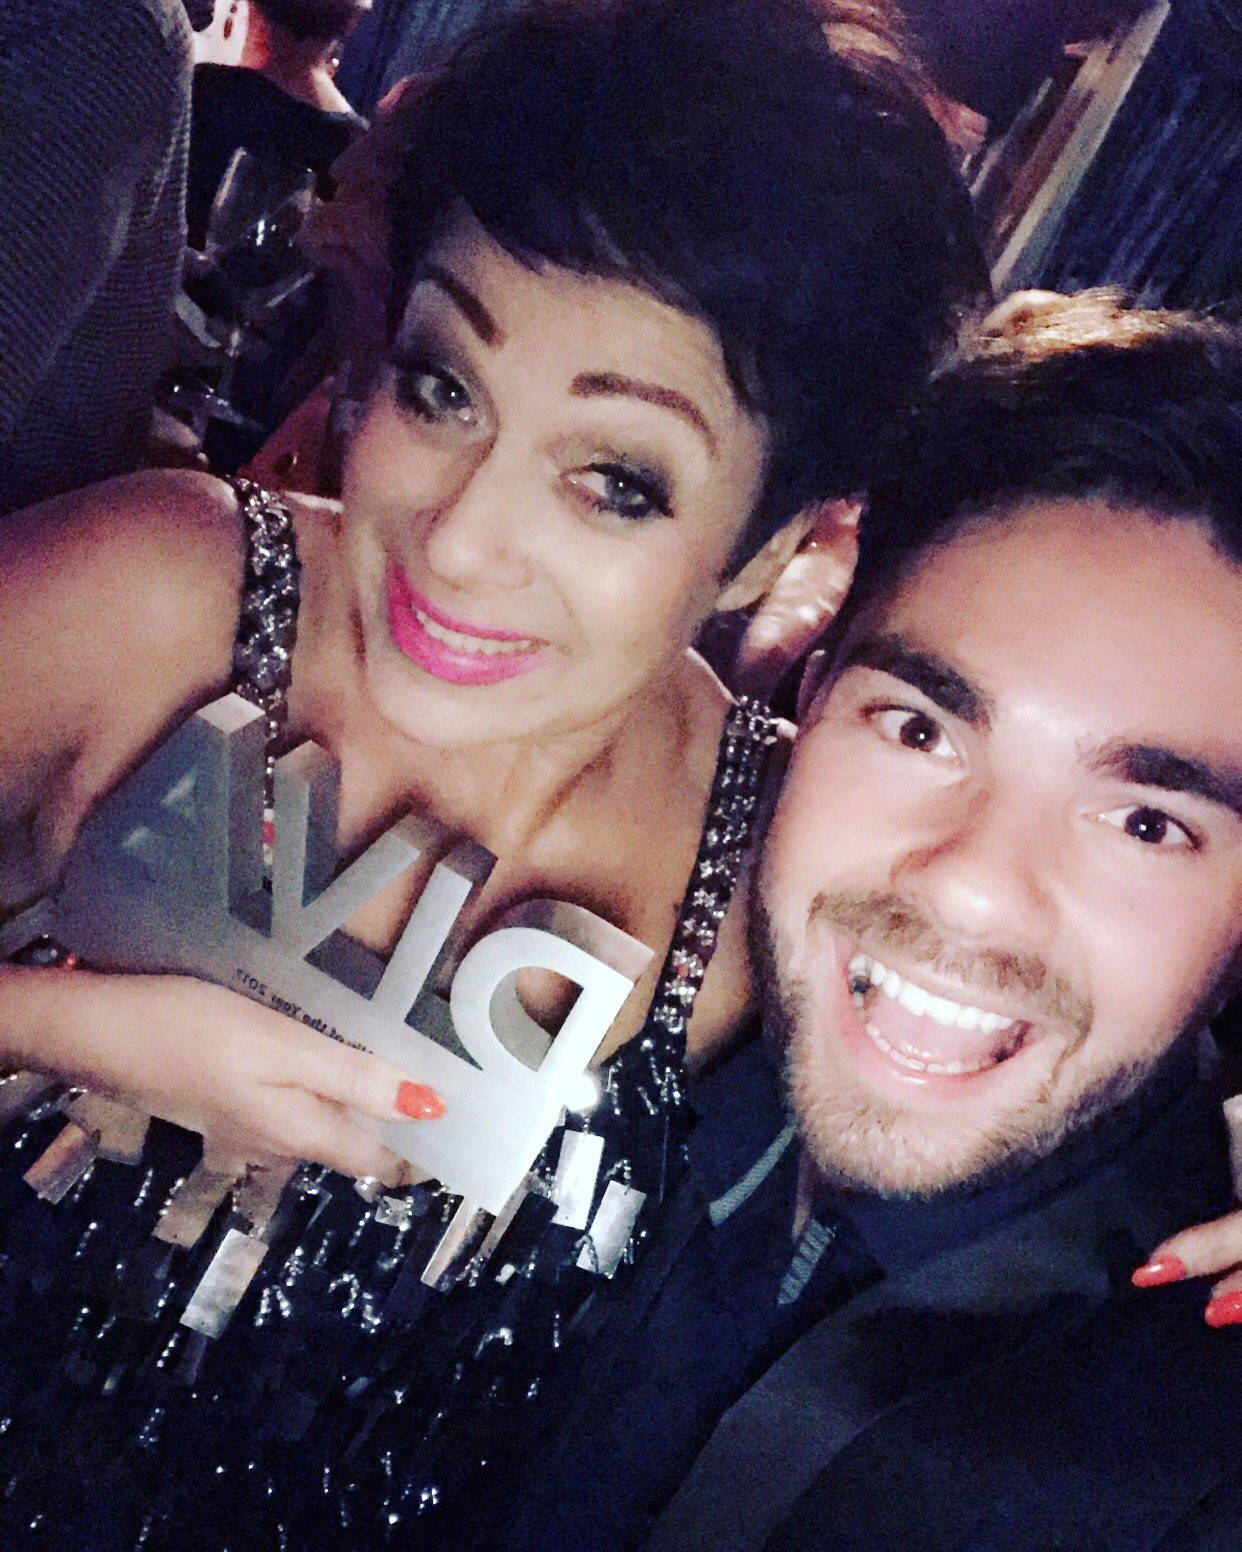 RT @Ryan_Mira: Well done on winning @RealDeniseWelch lovely to see you #DivaAwards 💅🏻❤️ https://t.co/6AWL3iqWkZ